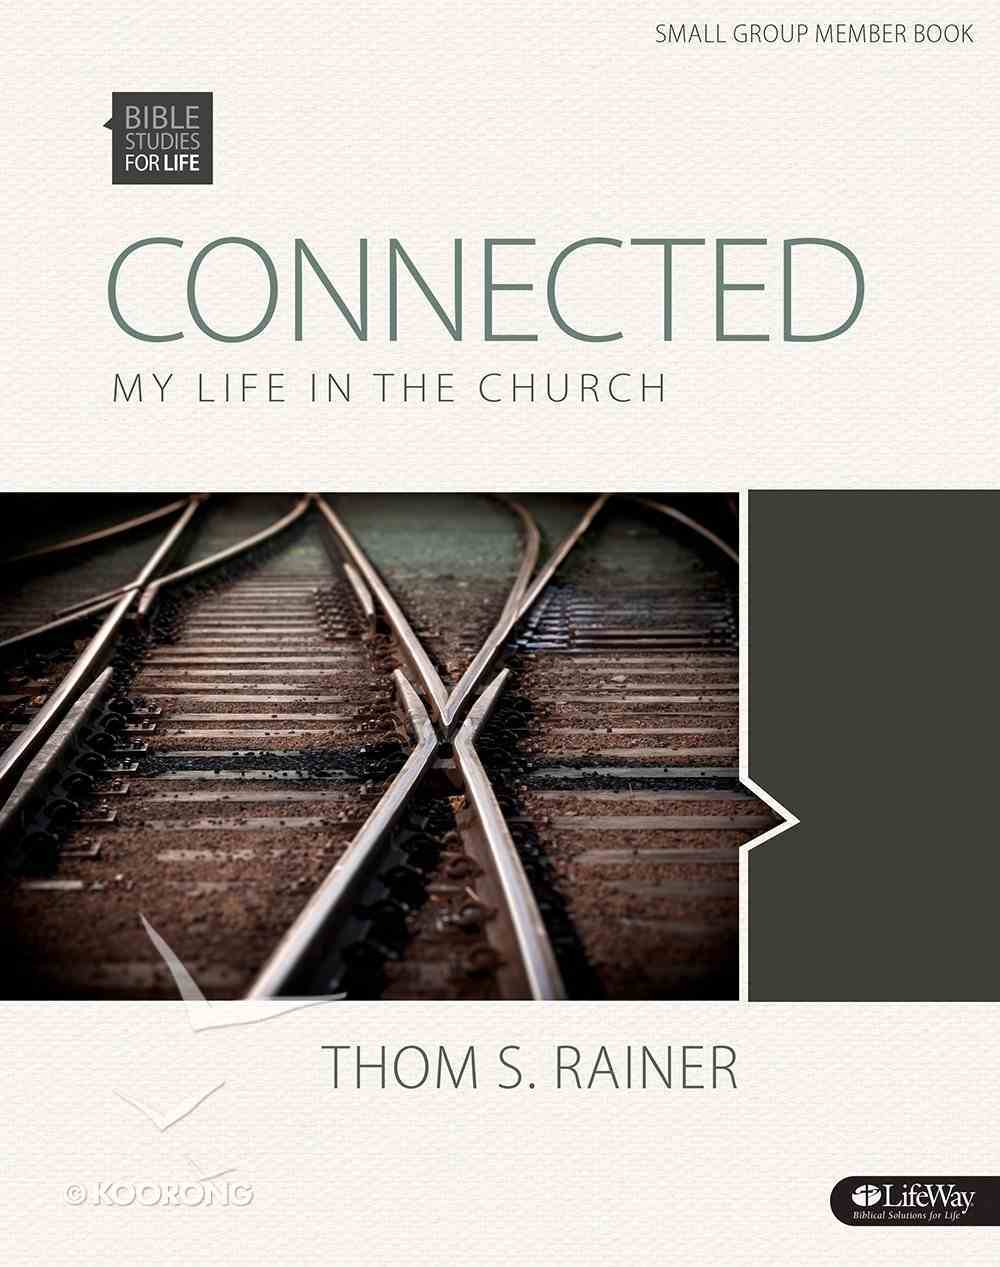 Connected My Life in the Church (Member Book) (Bible Studies For Life Series) Paperback